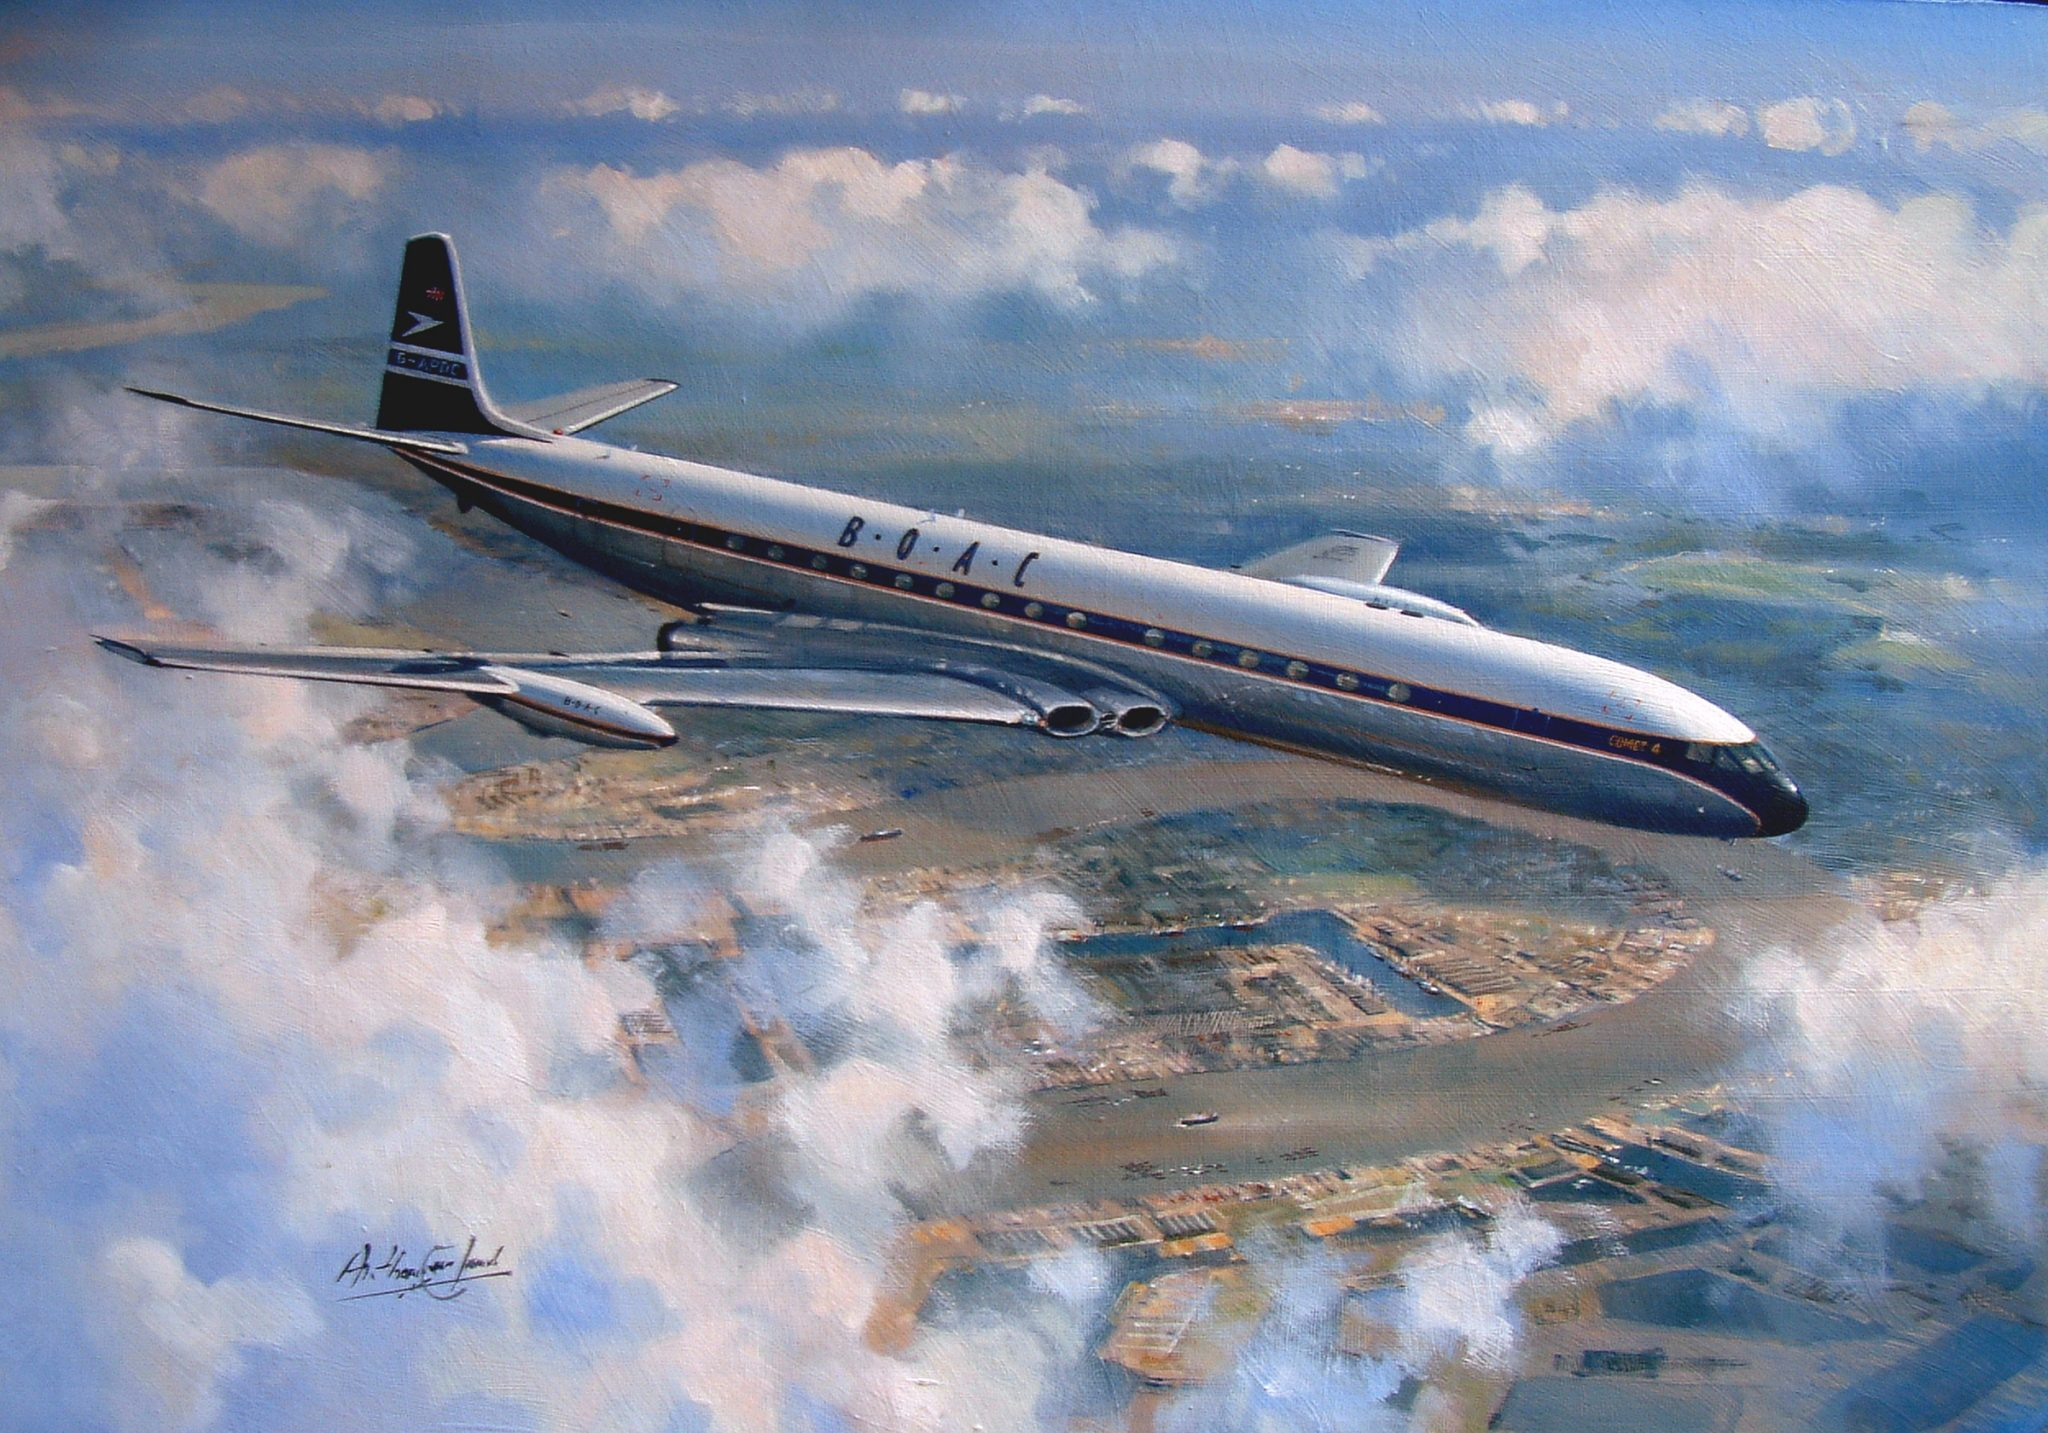 Boac - Dawn of the Jet Set